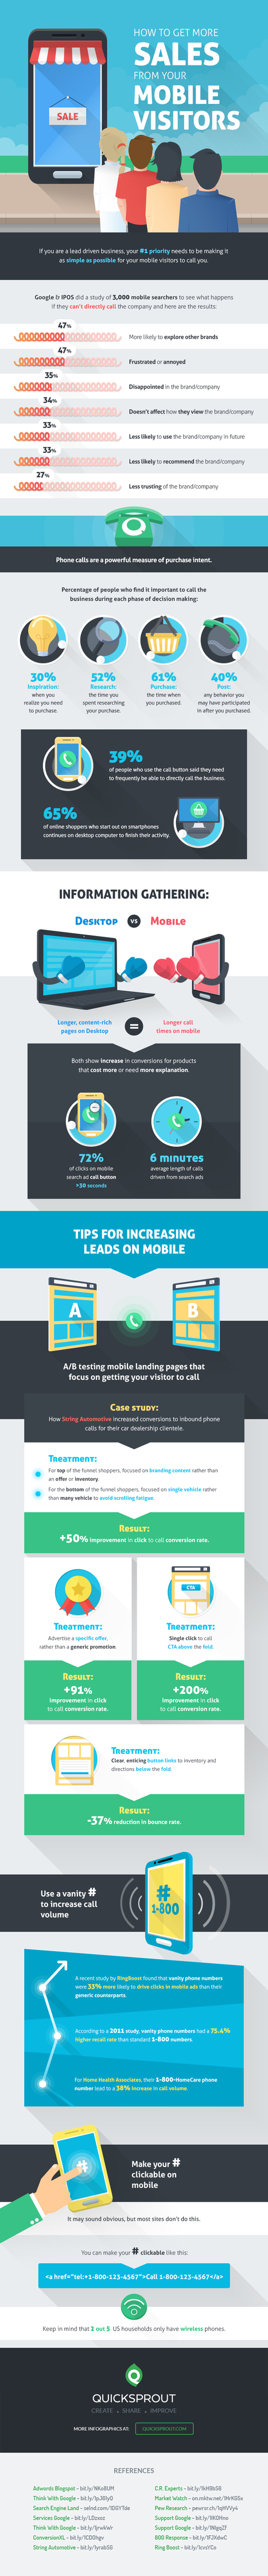 How to Get More Sales From Your Mobile Visitors | The Perfect Storm Team Mobile | Scoop.it